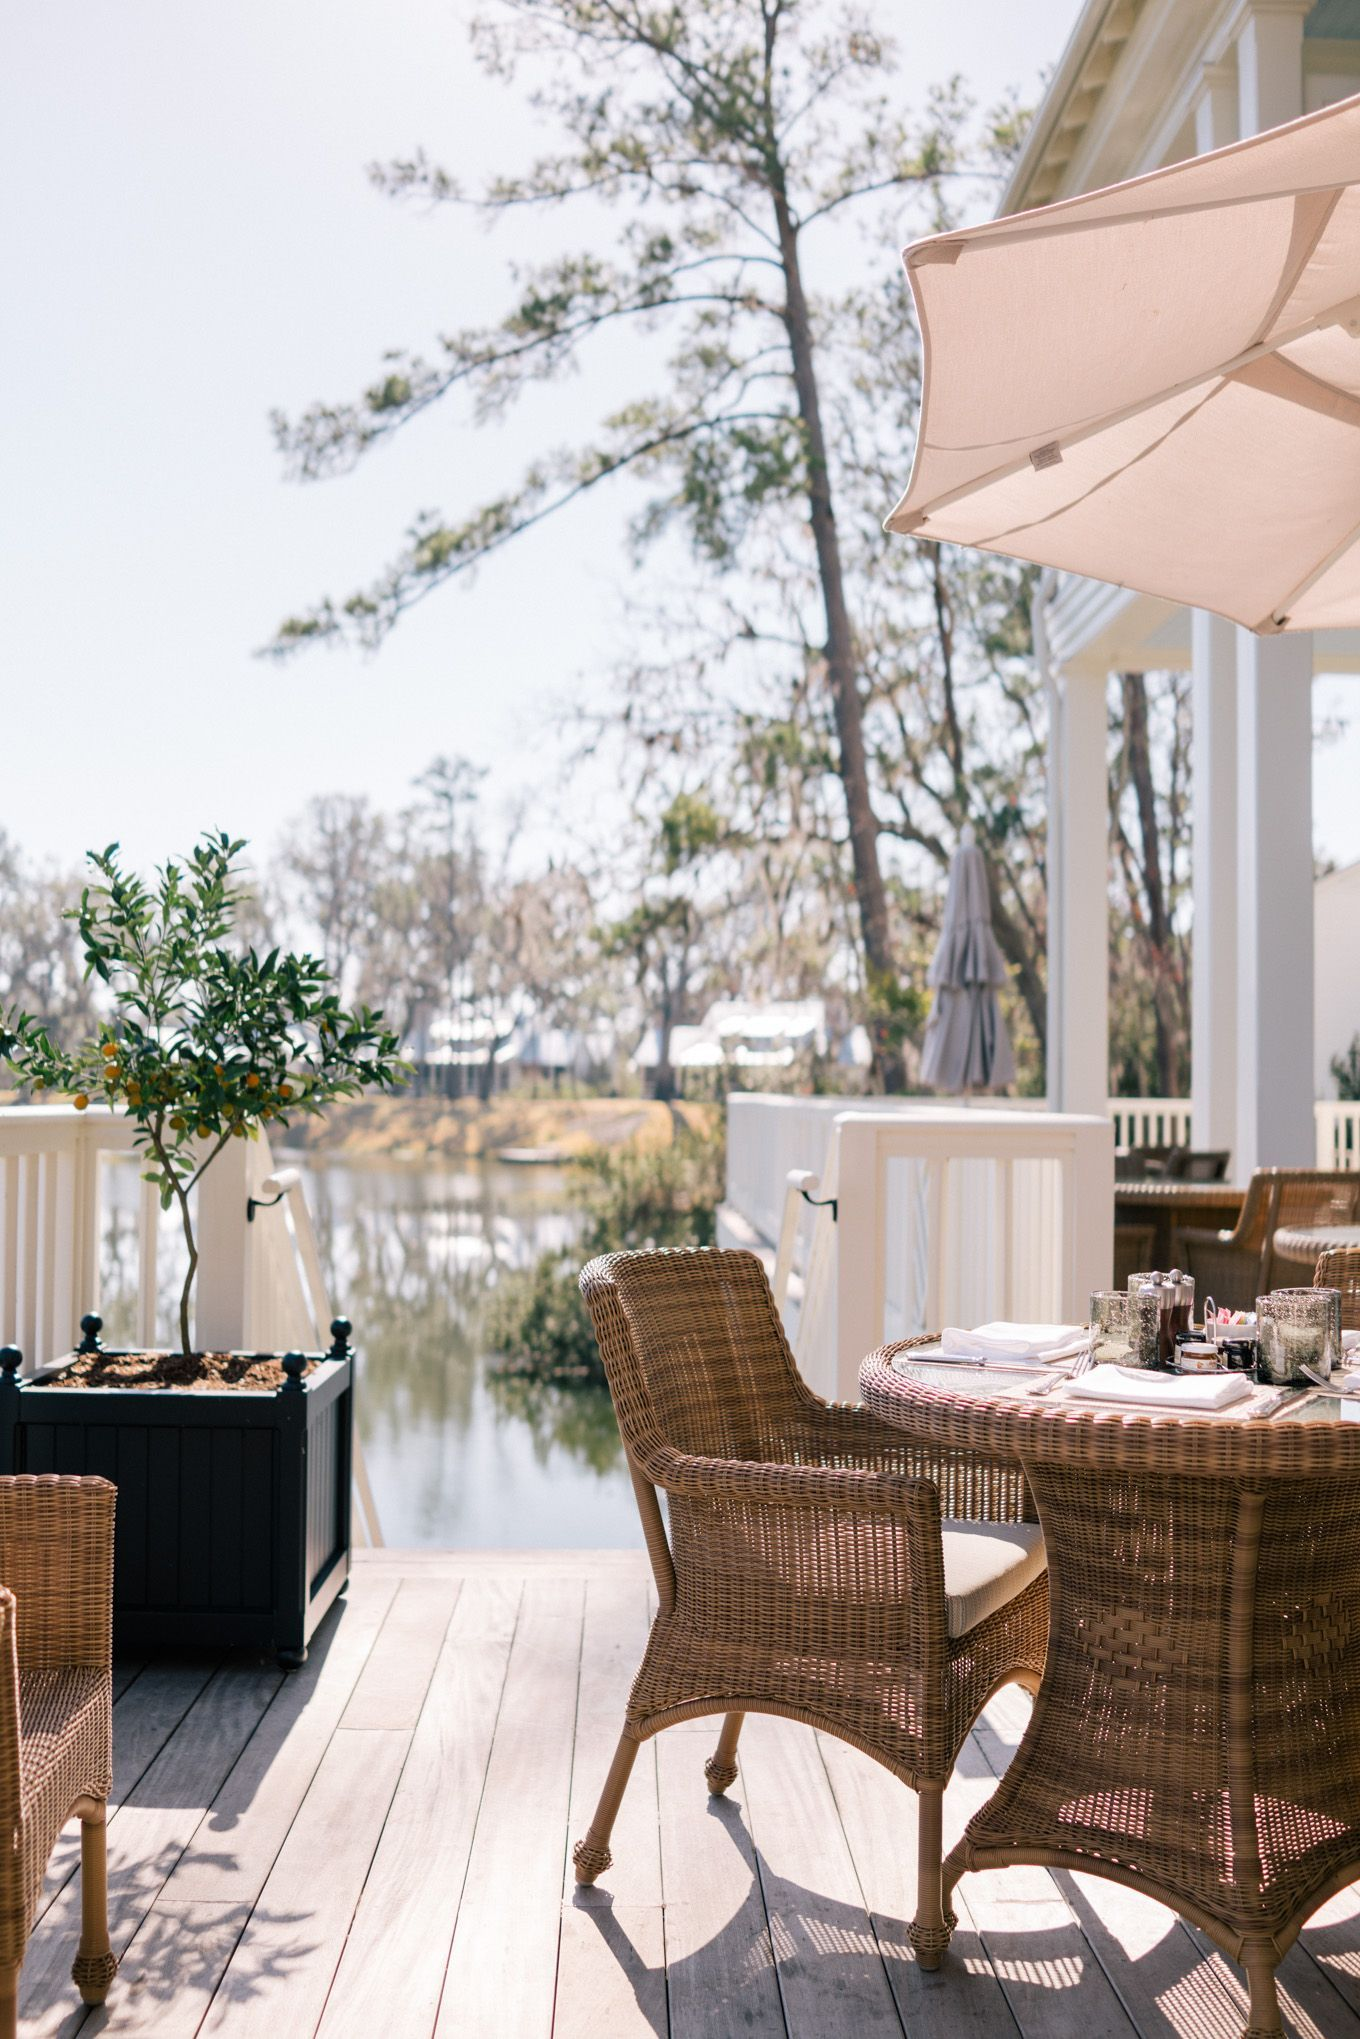 Gal Meets Glam Palmetto Bluff | Designing Your Backyard Deck ...